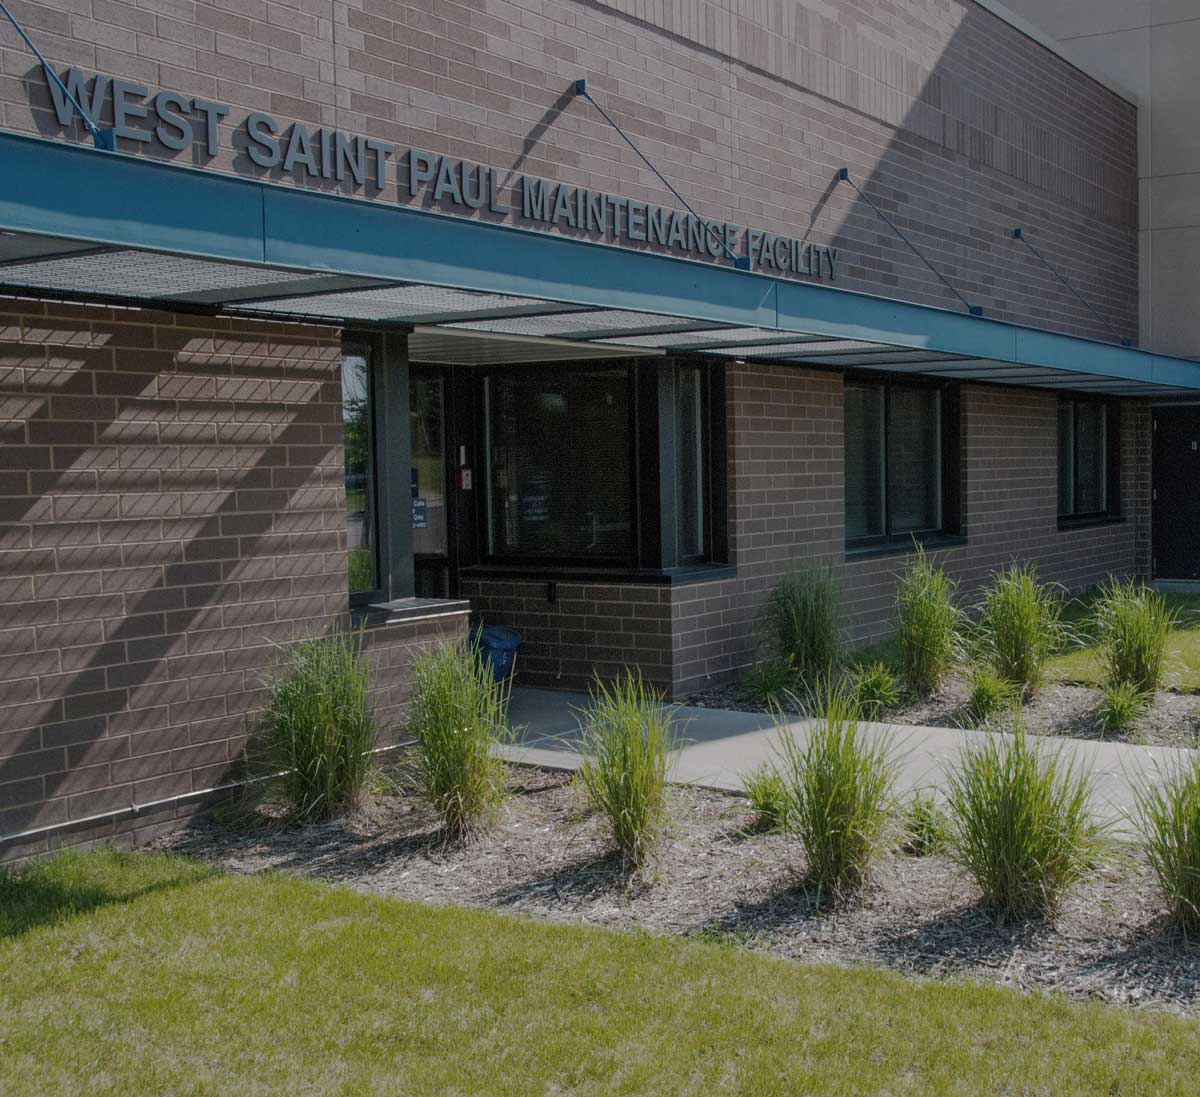 West Saint Paul Maintenance Facility